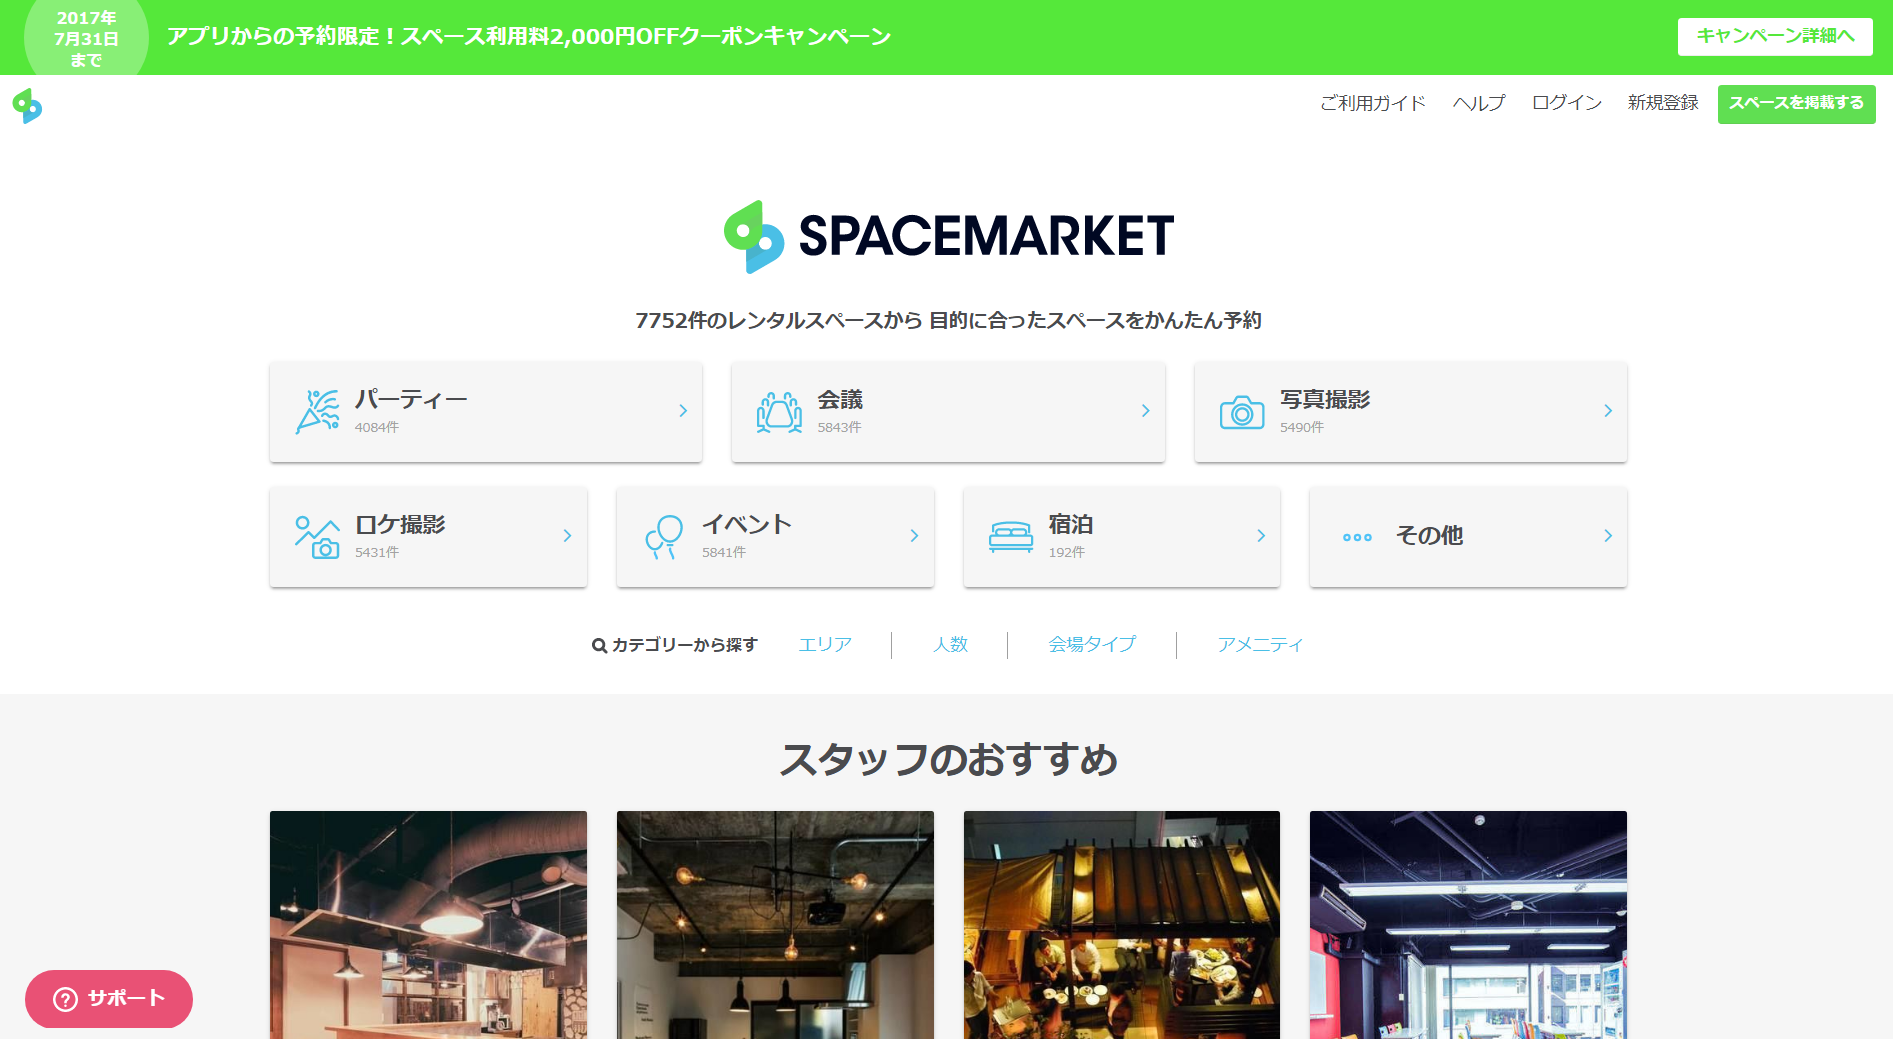 spacemarket_001.png